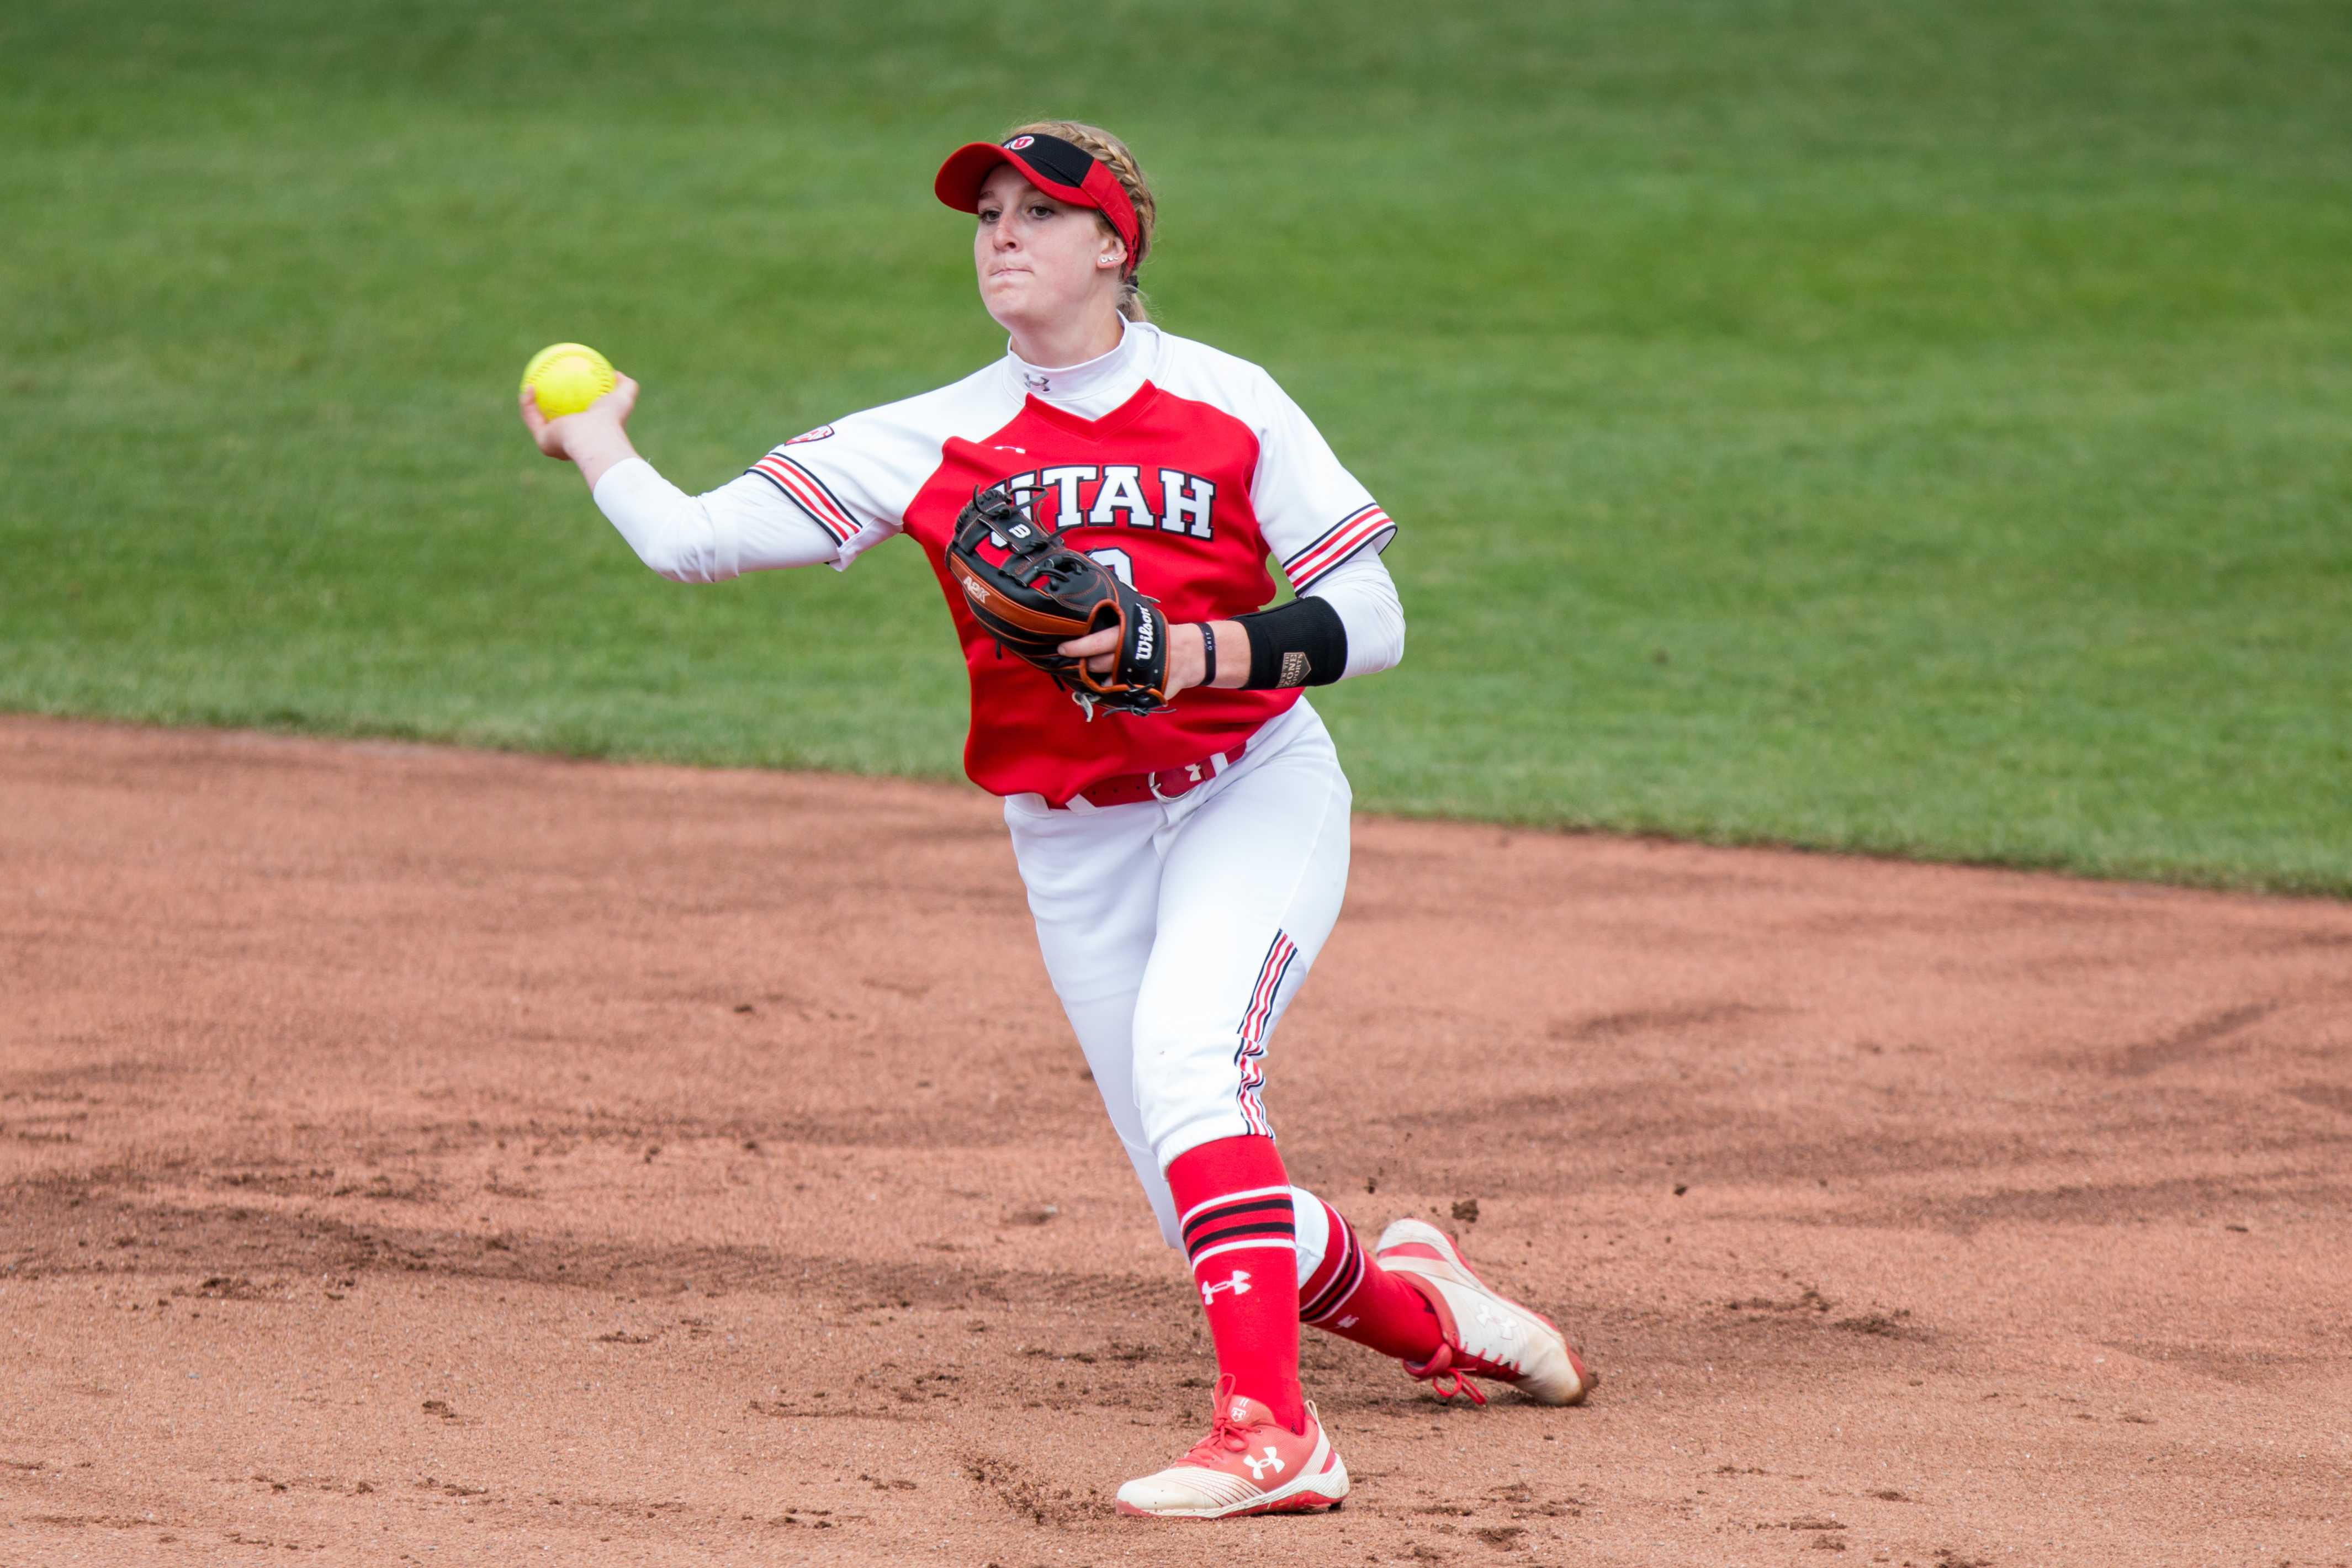 University of Utah freshman utility Ellessa Bonstrom (2) threw the ball to a teammate prior to the start of the game in an NCAA Softball game vs. Arizona at Dumke Family Softball Field in Salt Lake City, UT on Saturday April 06, 2019.  (Photo by Curtis Lin | Daily Utah Chronicle)